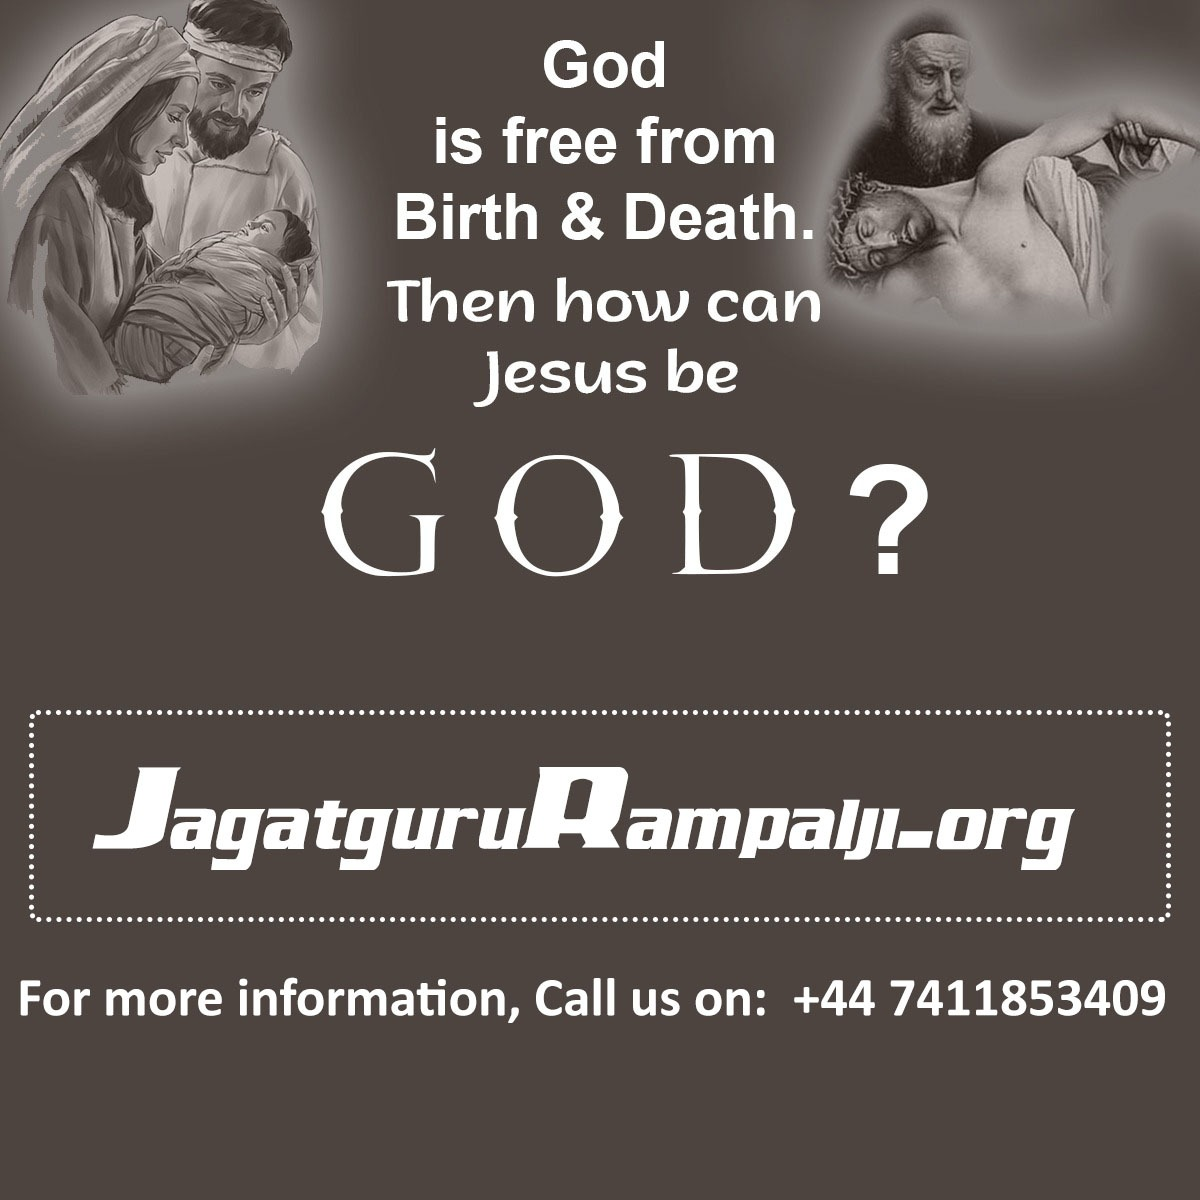 #TuesdayThoughts  Supreme God Kabir is the only God who is free from the painful cycle of birth and death. The one who dies cannot be called the eternal God. <br>http://pic.twitter.com/rOa70a9KMp